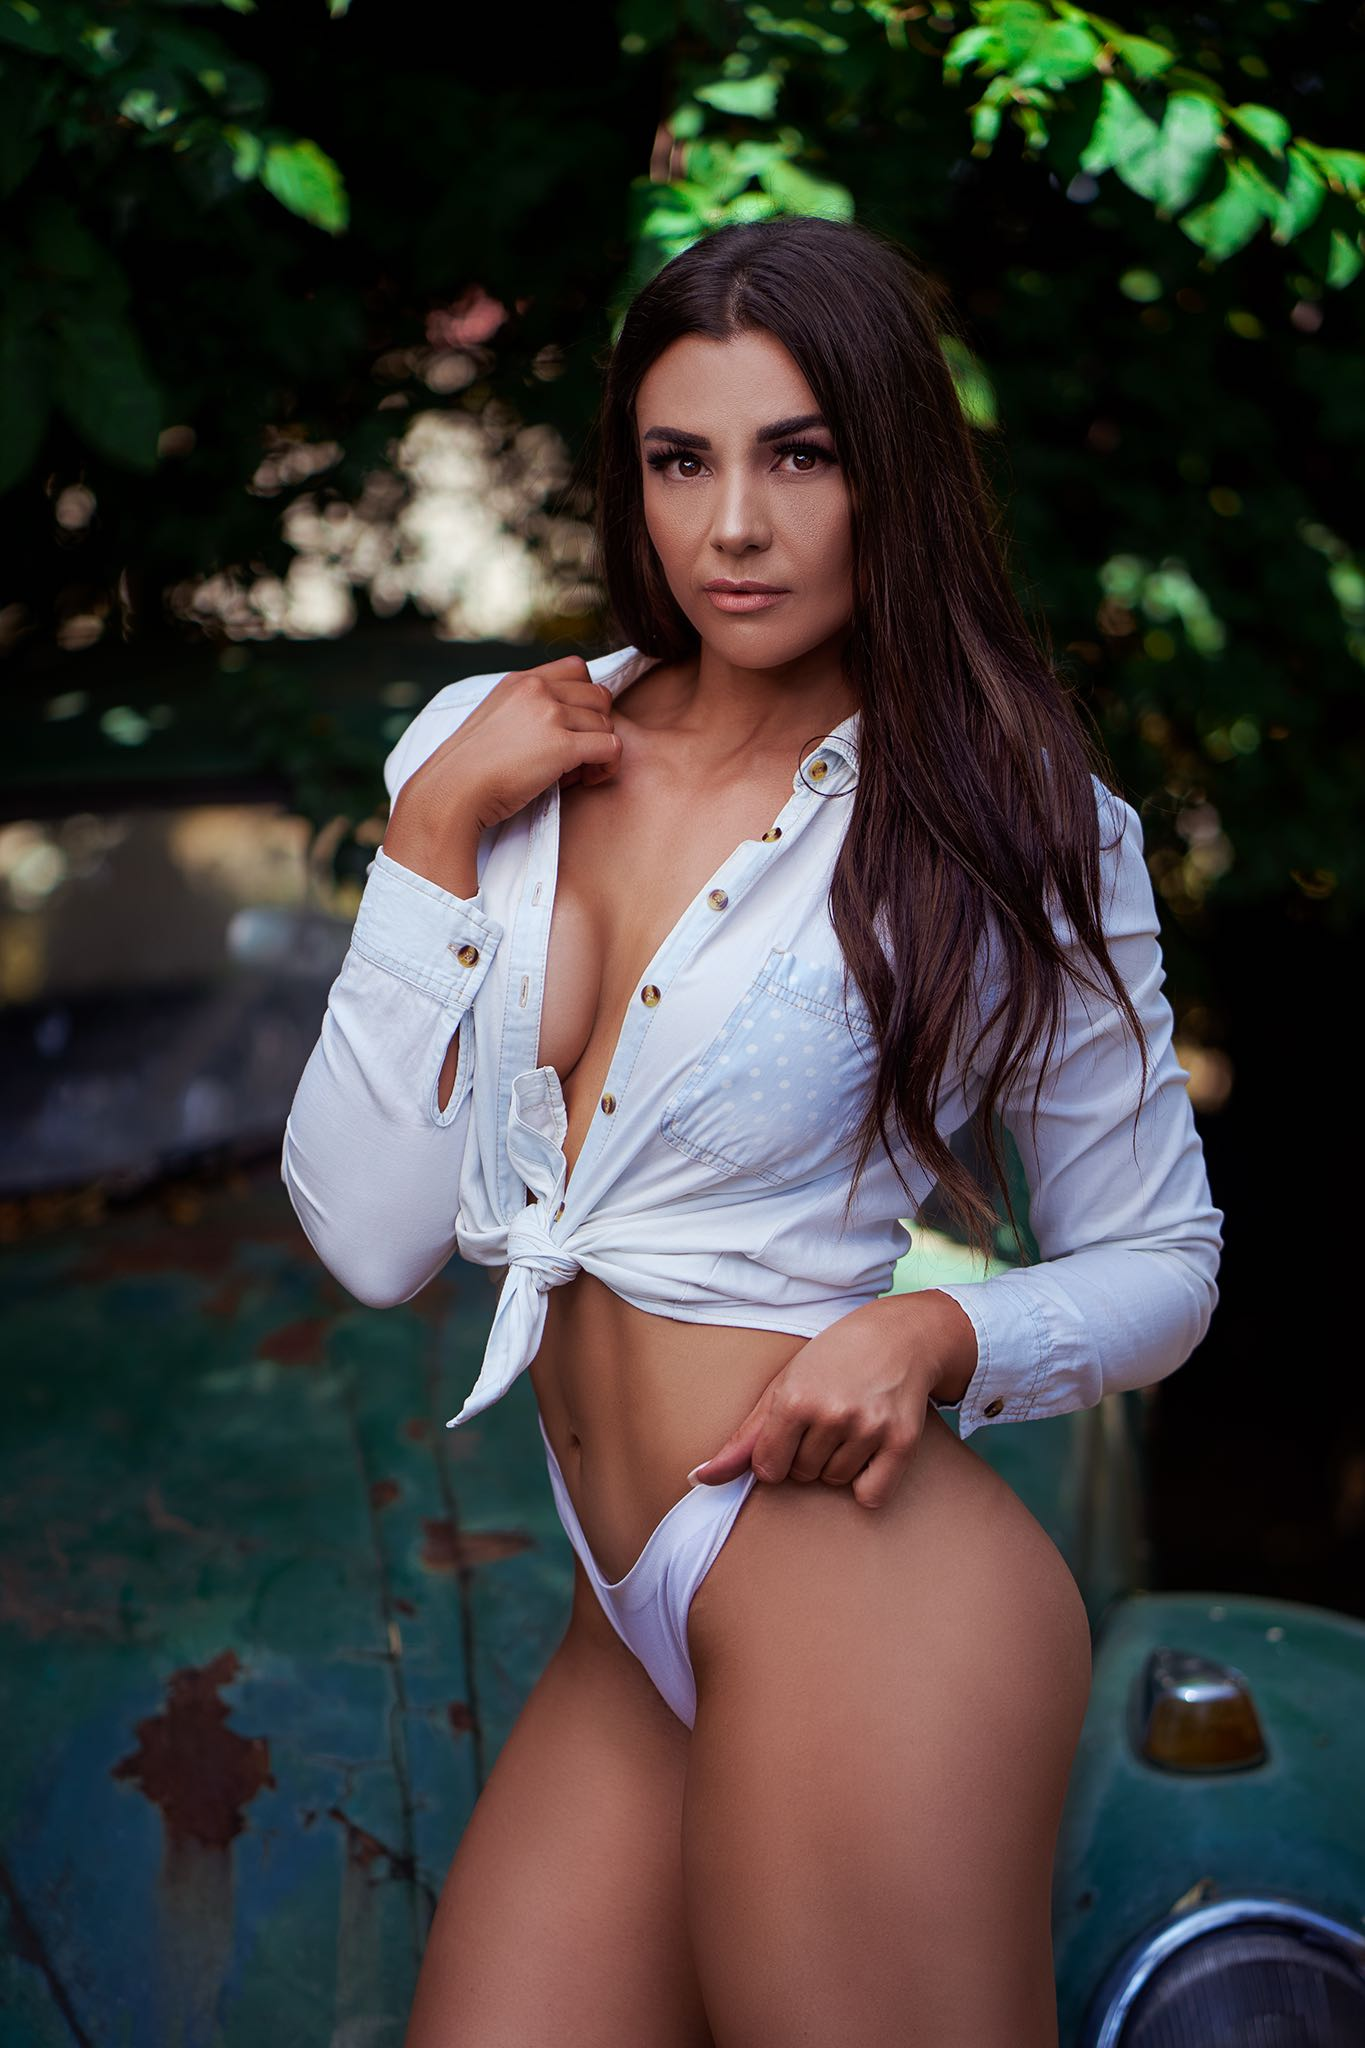 Our South African Babes feature with Yvette Ferreira